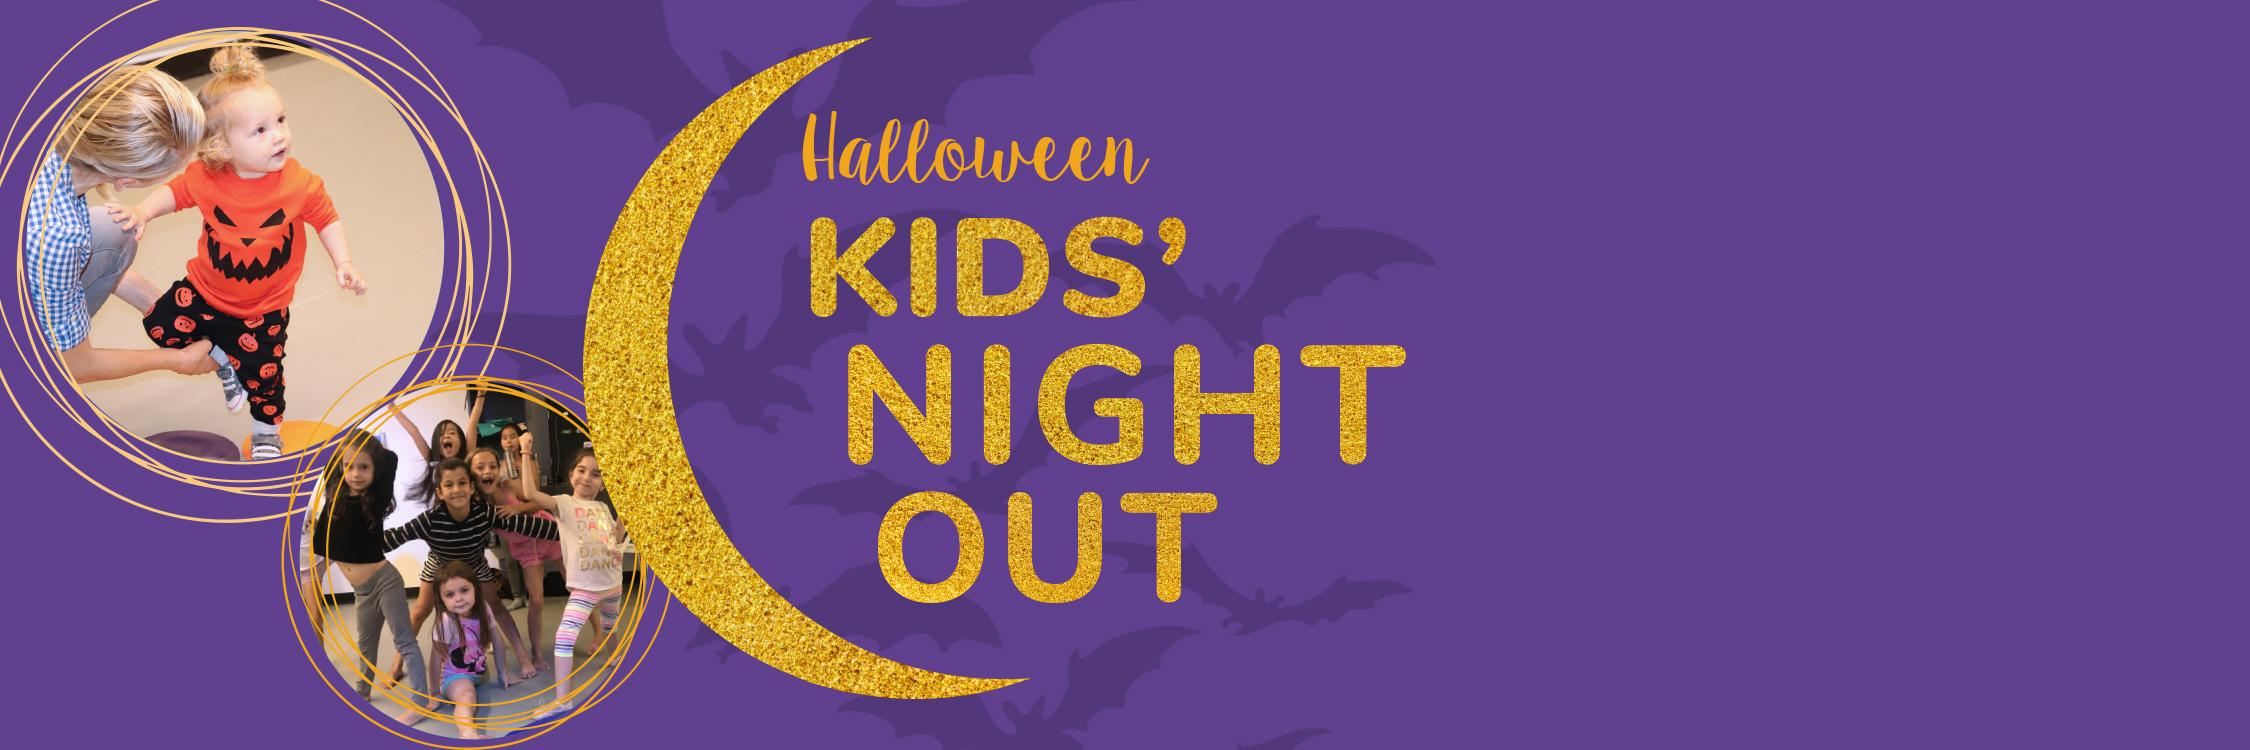 Kids' Night Out Halloween Party